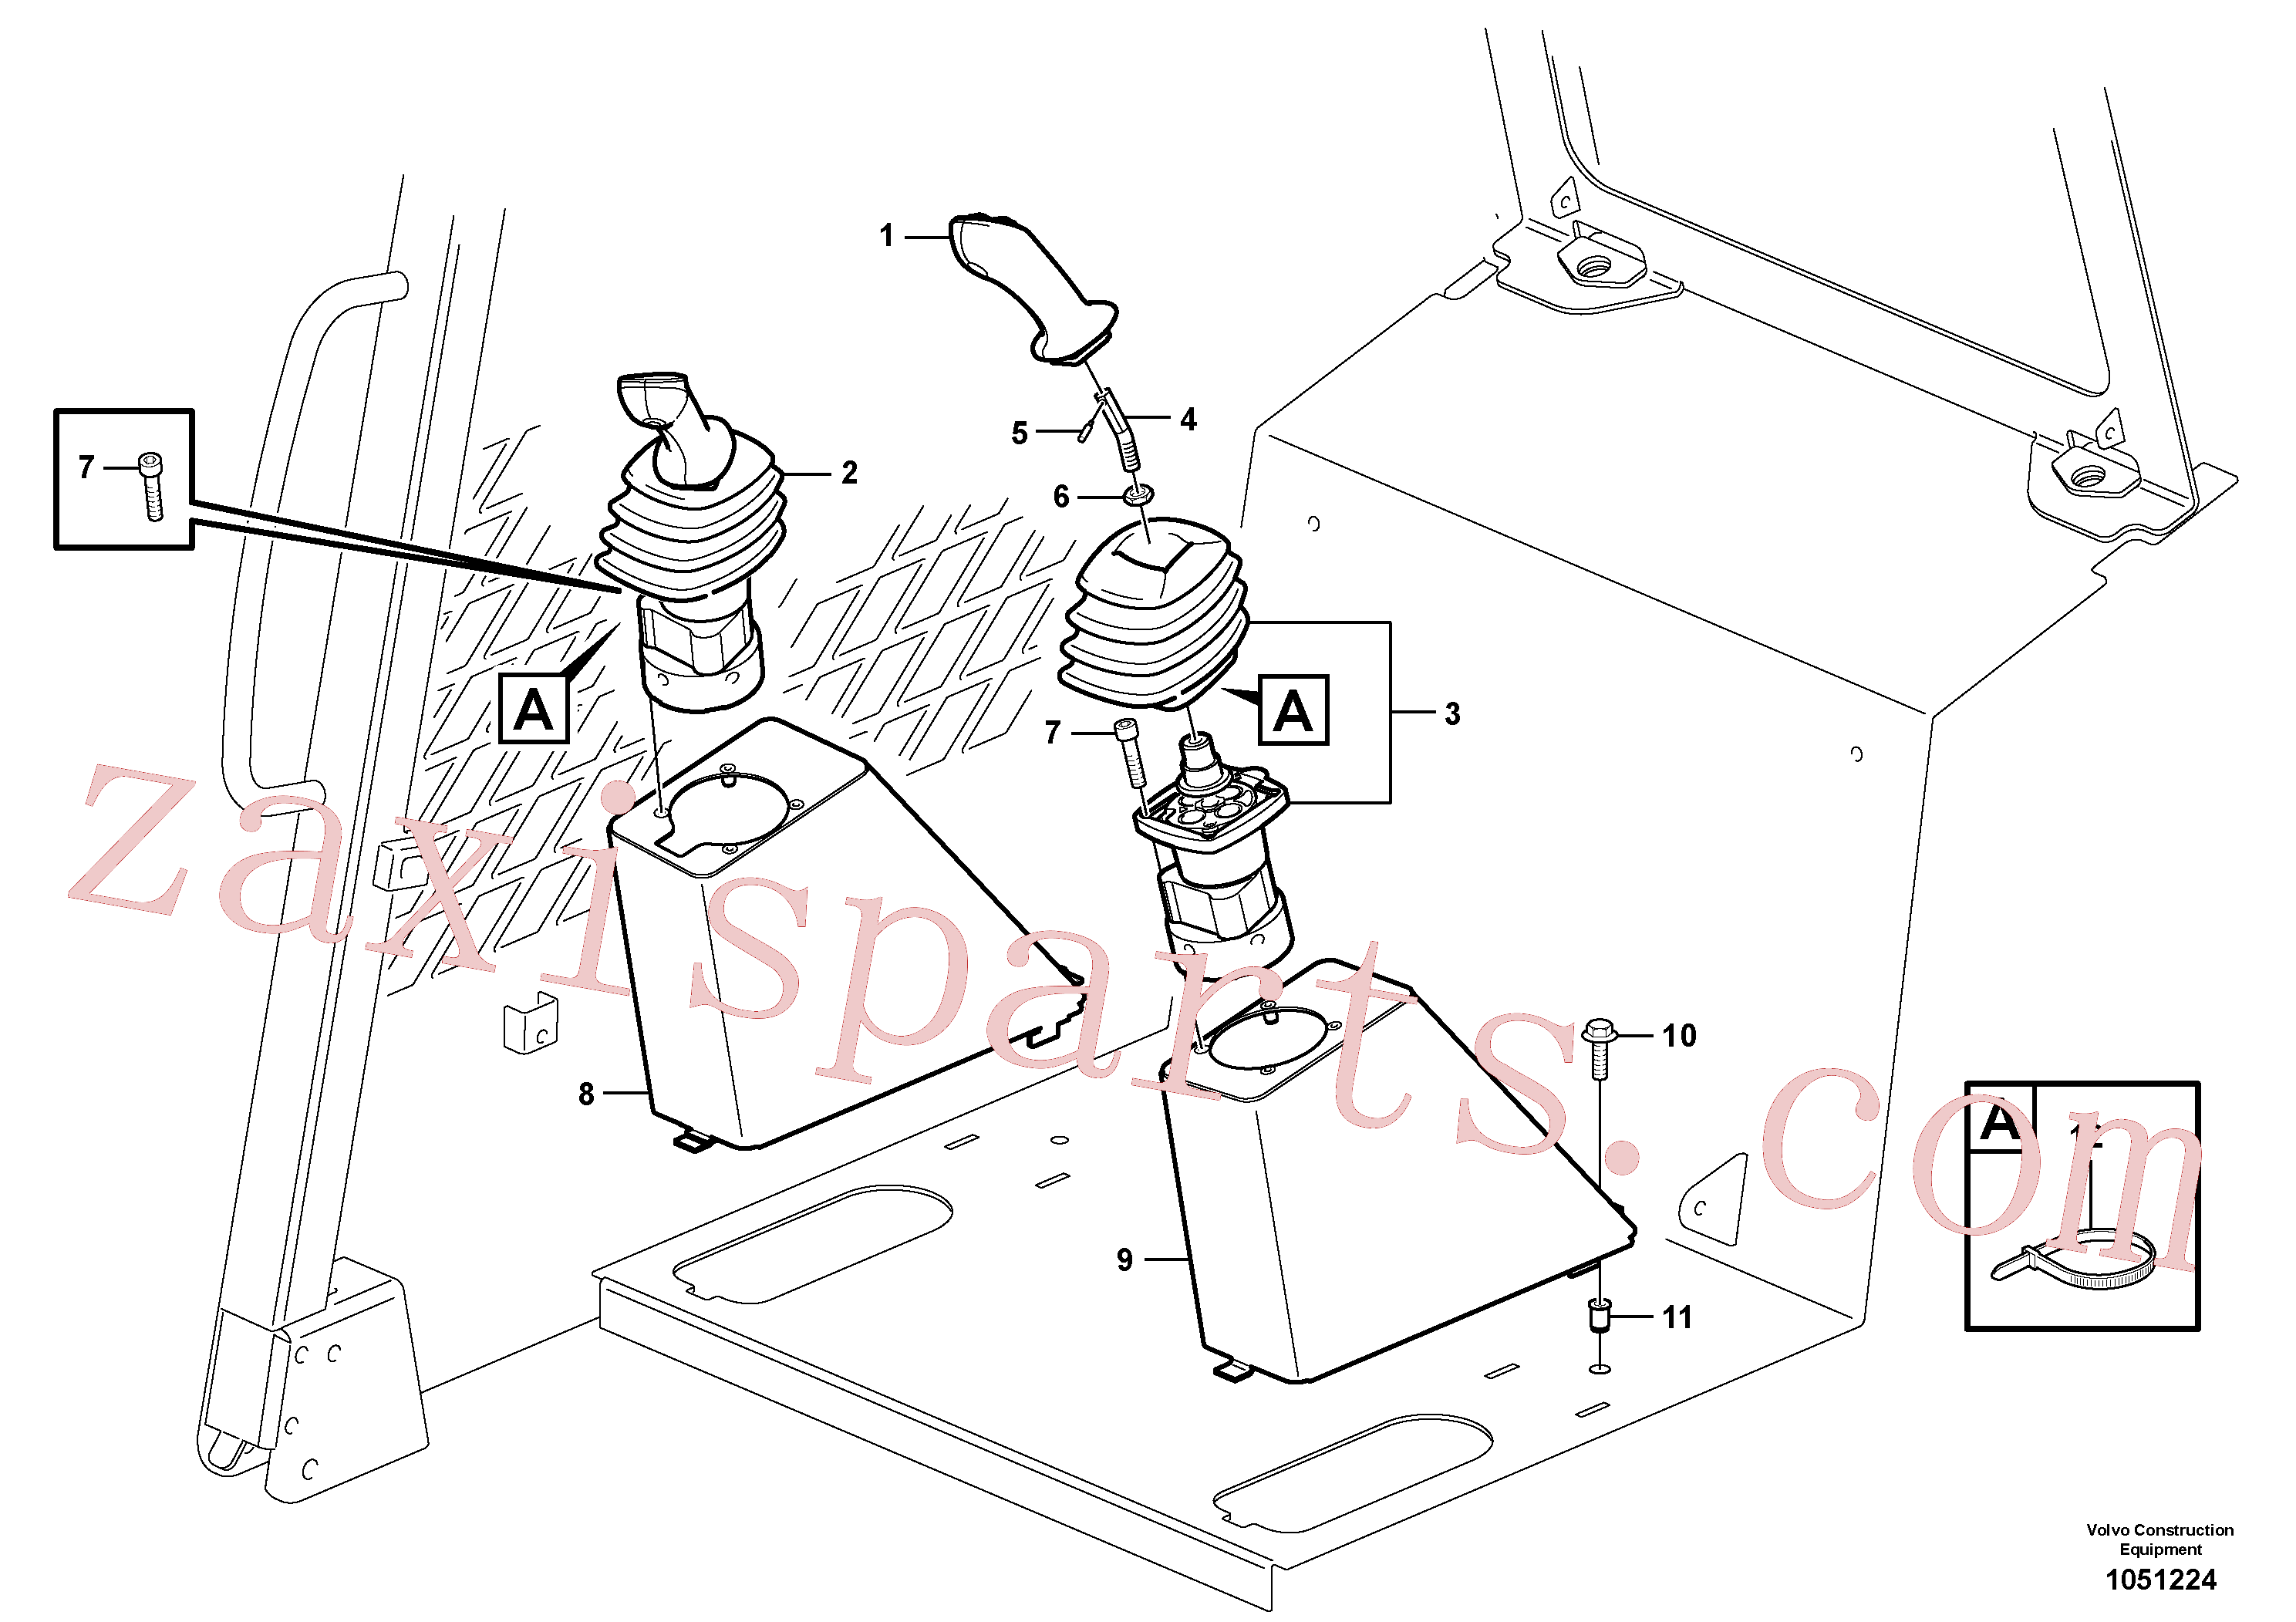 VOE971081 for Volvo Optional hand controls(1051224 assembly)